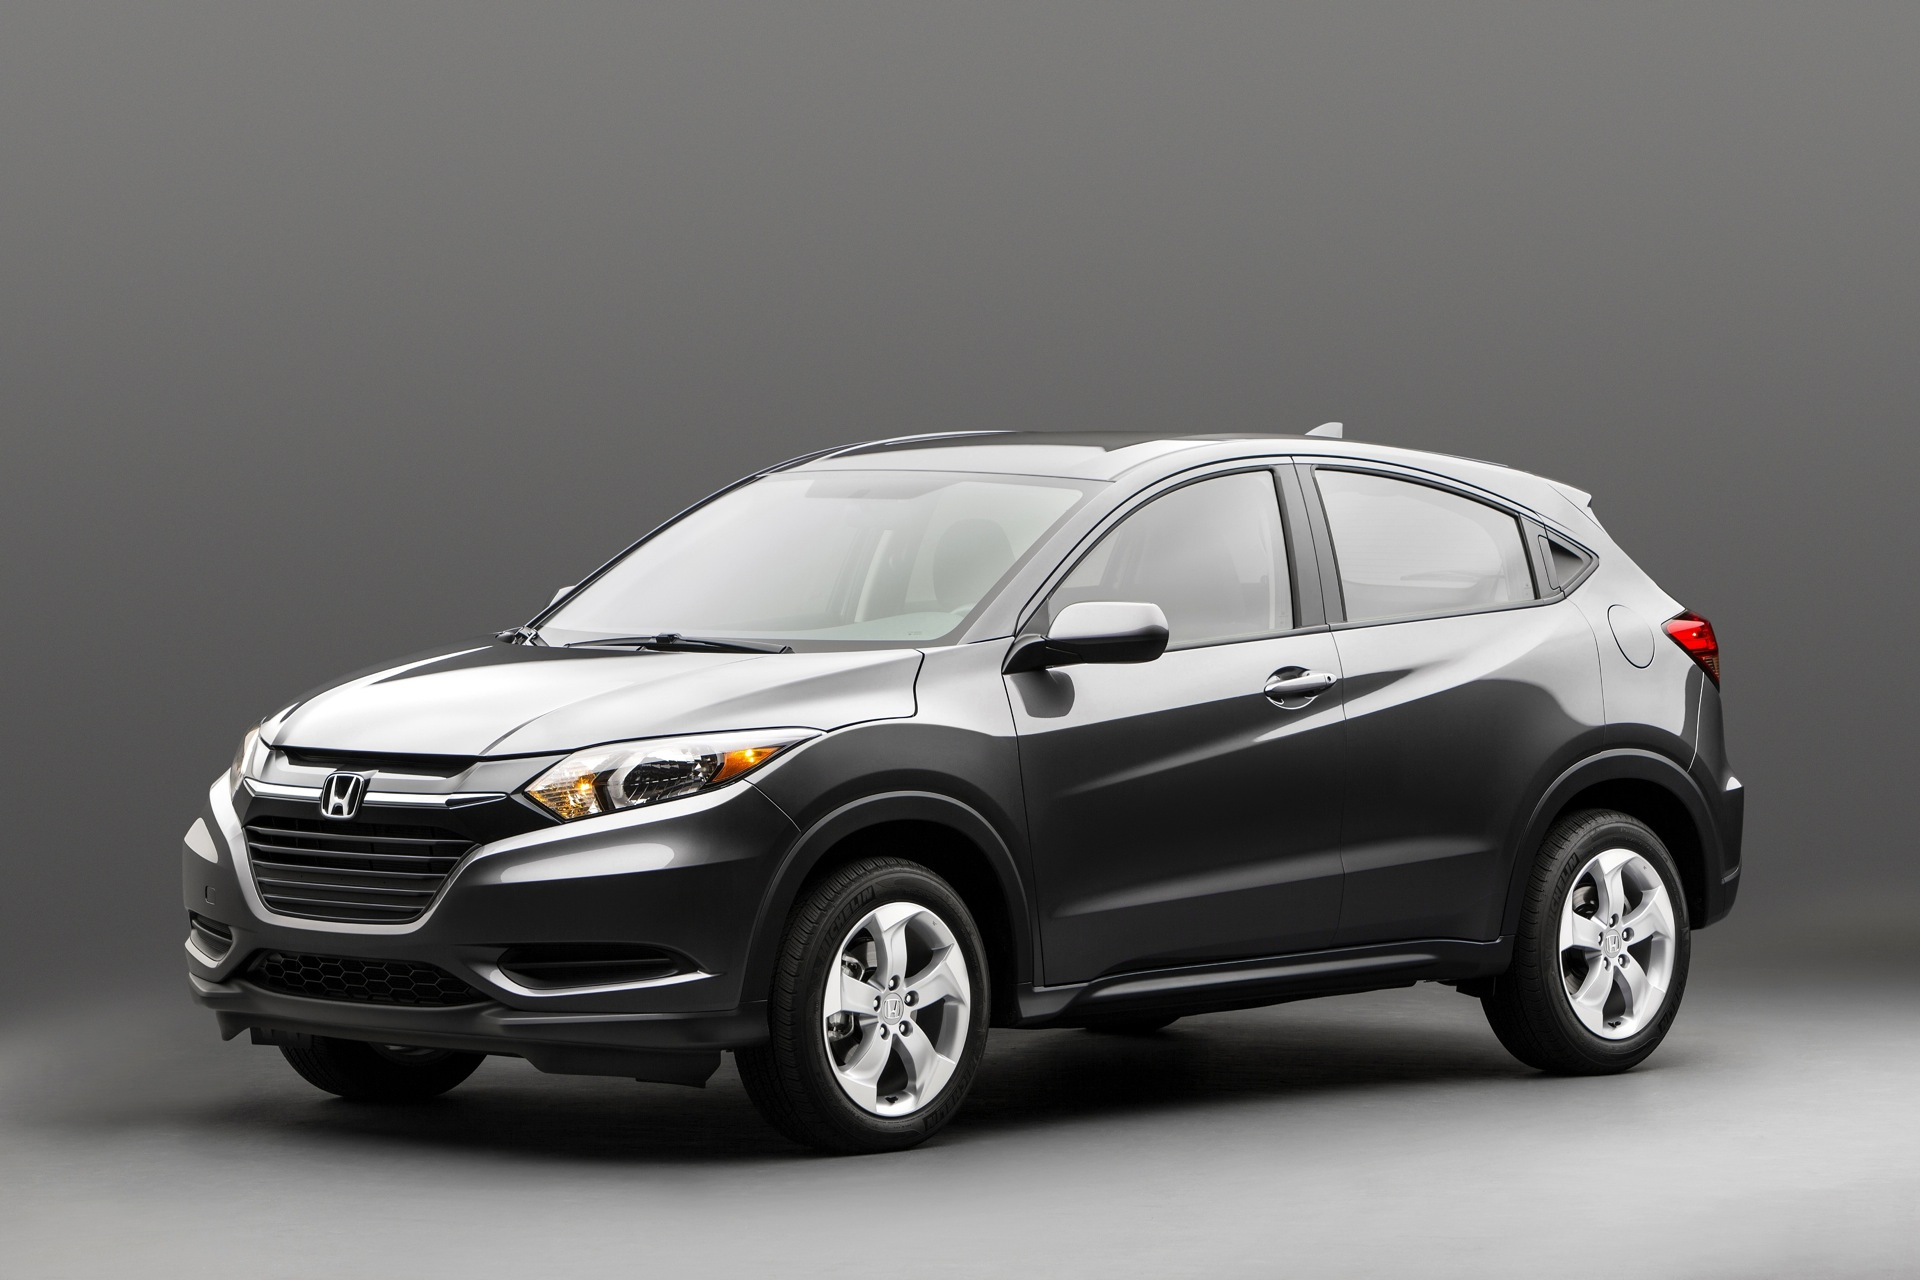 honda vezel badged an hr v for u s acura version still pending. Black Bedroom Furniture Sets. Home Design Ideas